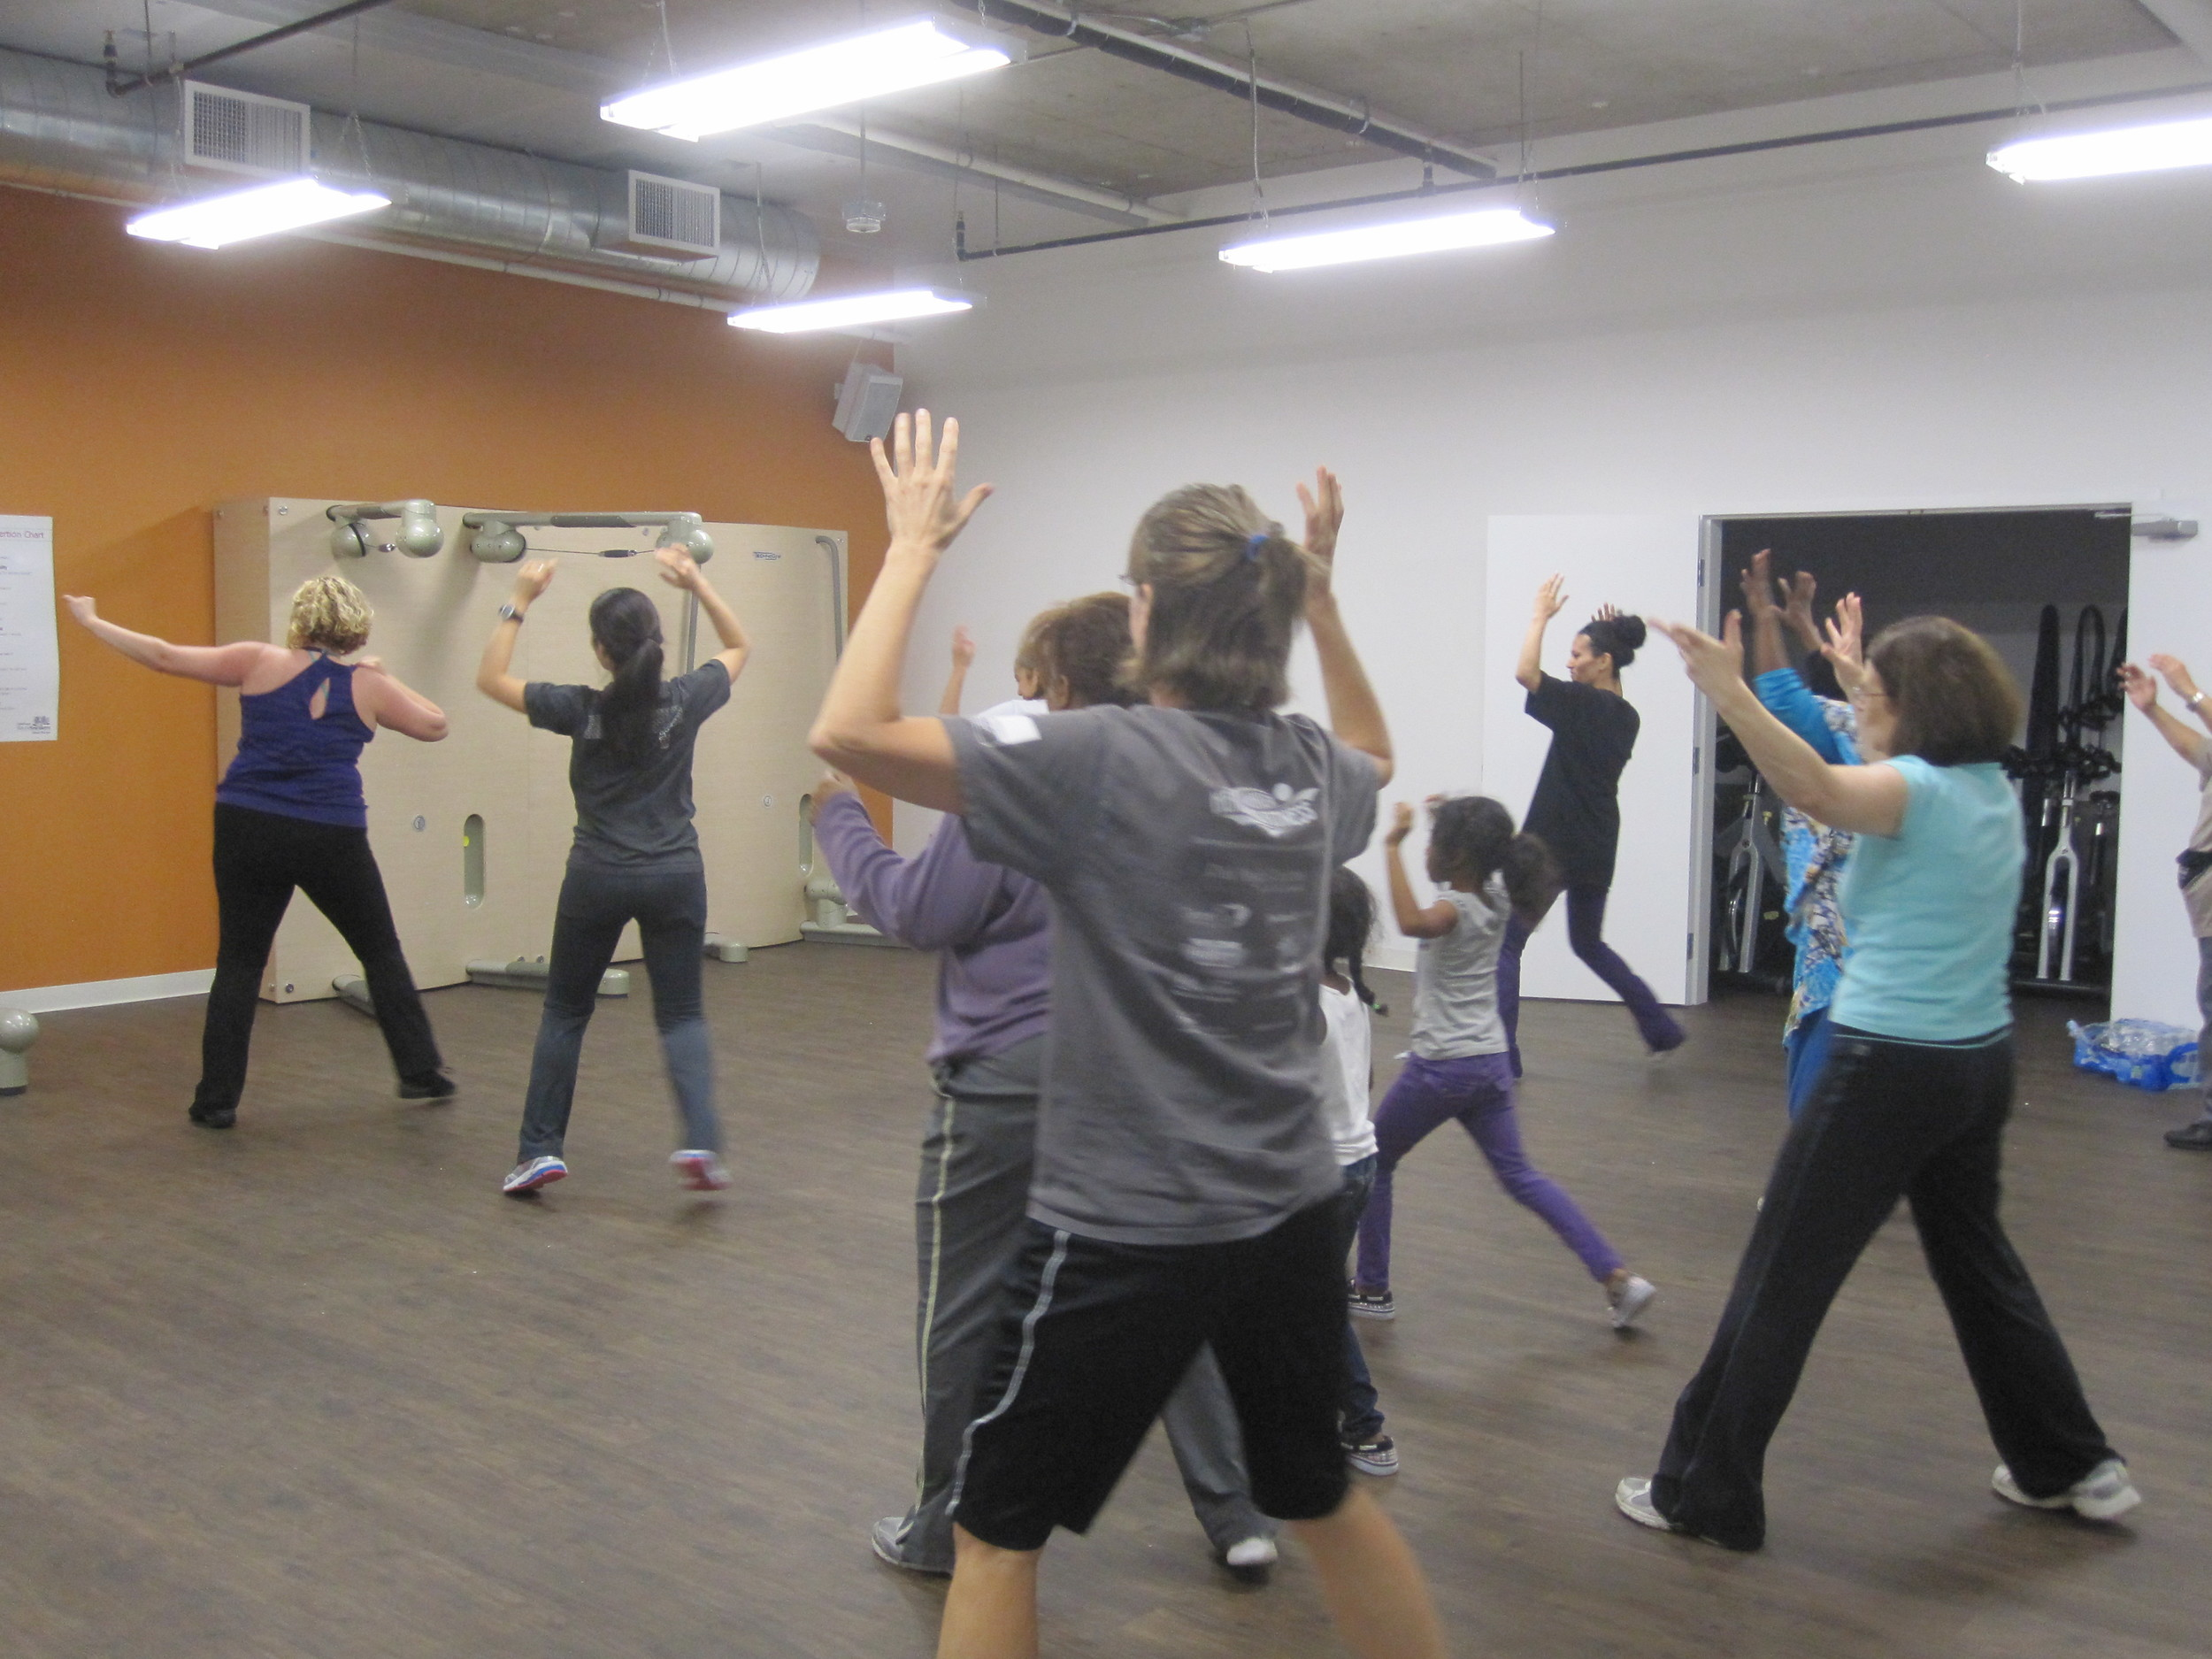 Women and girls of all ages move to the beat at a ZUMBA fitness session in our new classroom.